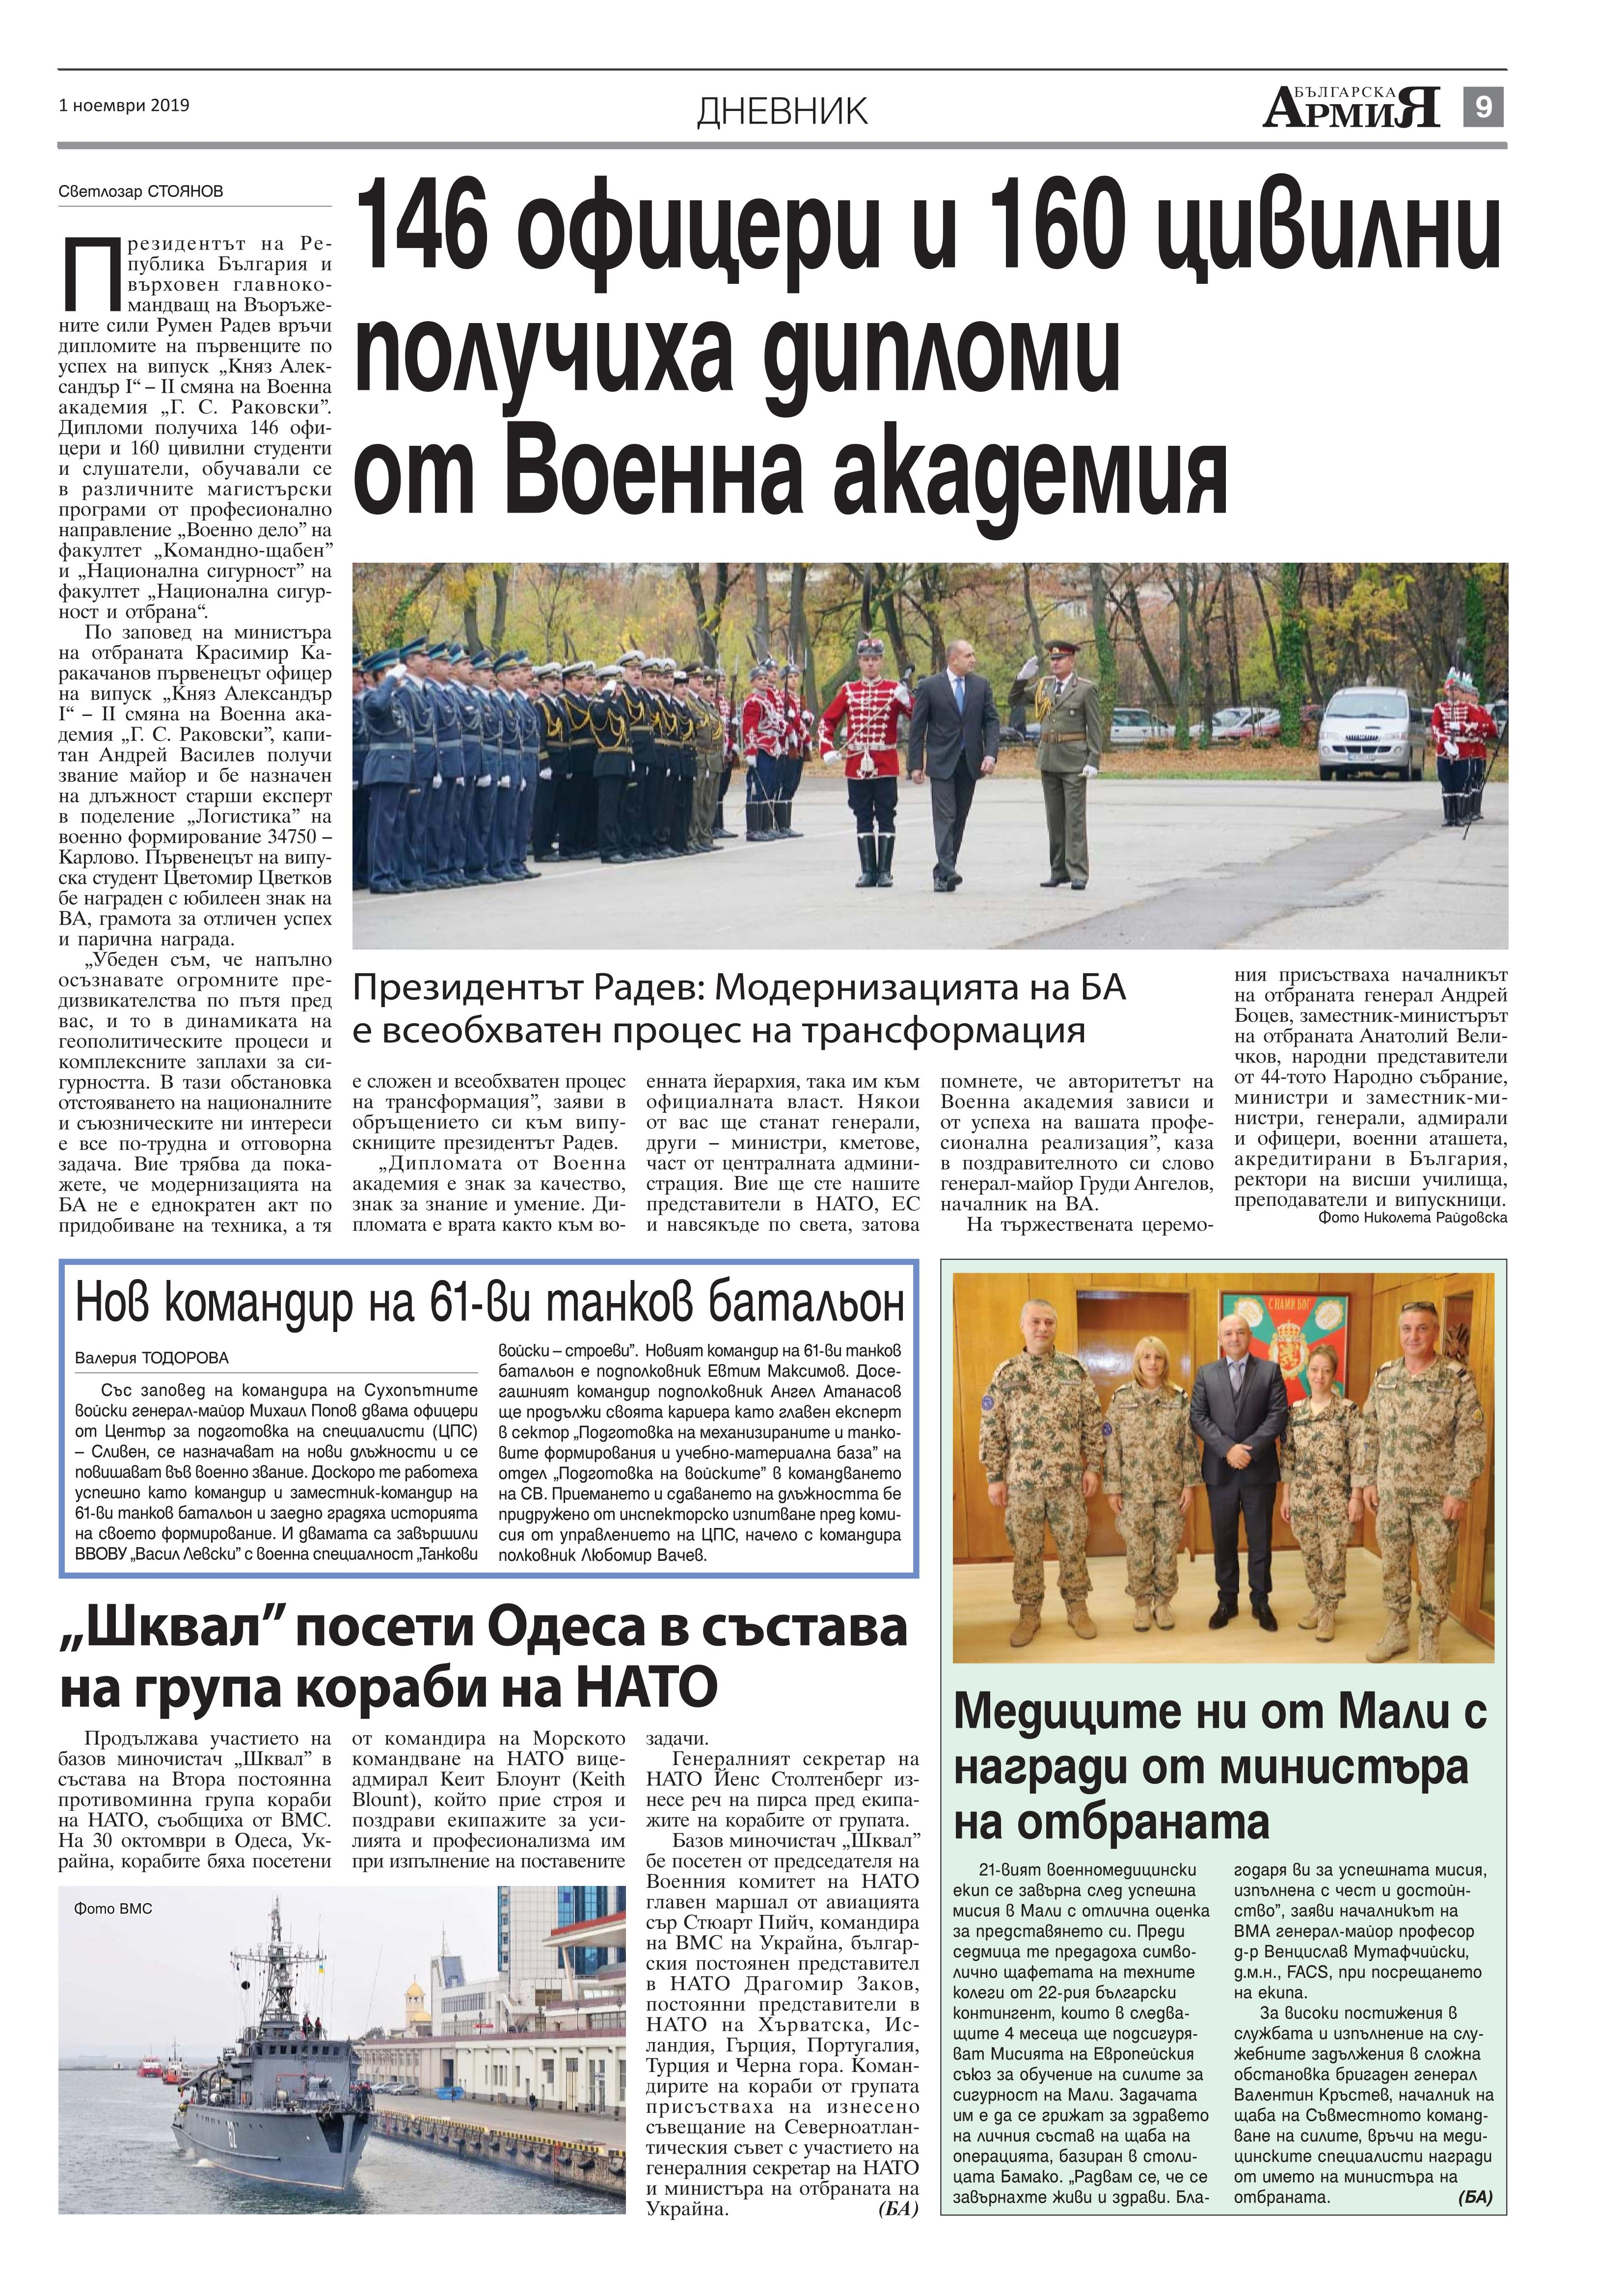 https://www.armymedia.bg/wp-content/uploads/2015/06/09.page1_-112.jpg